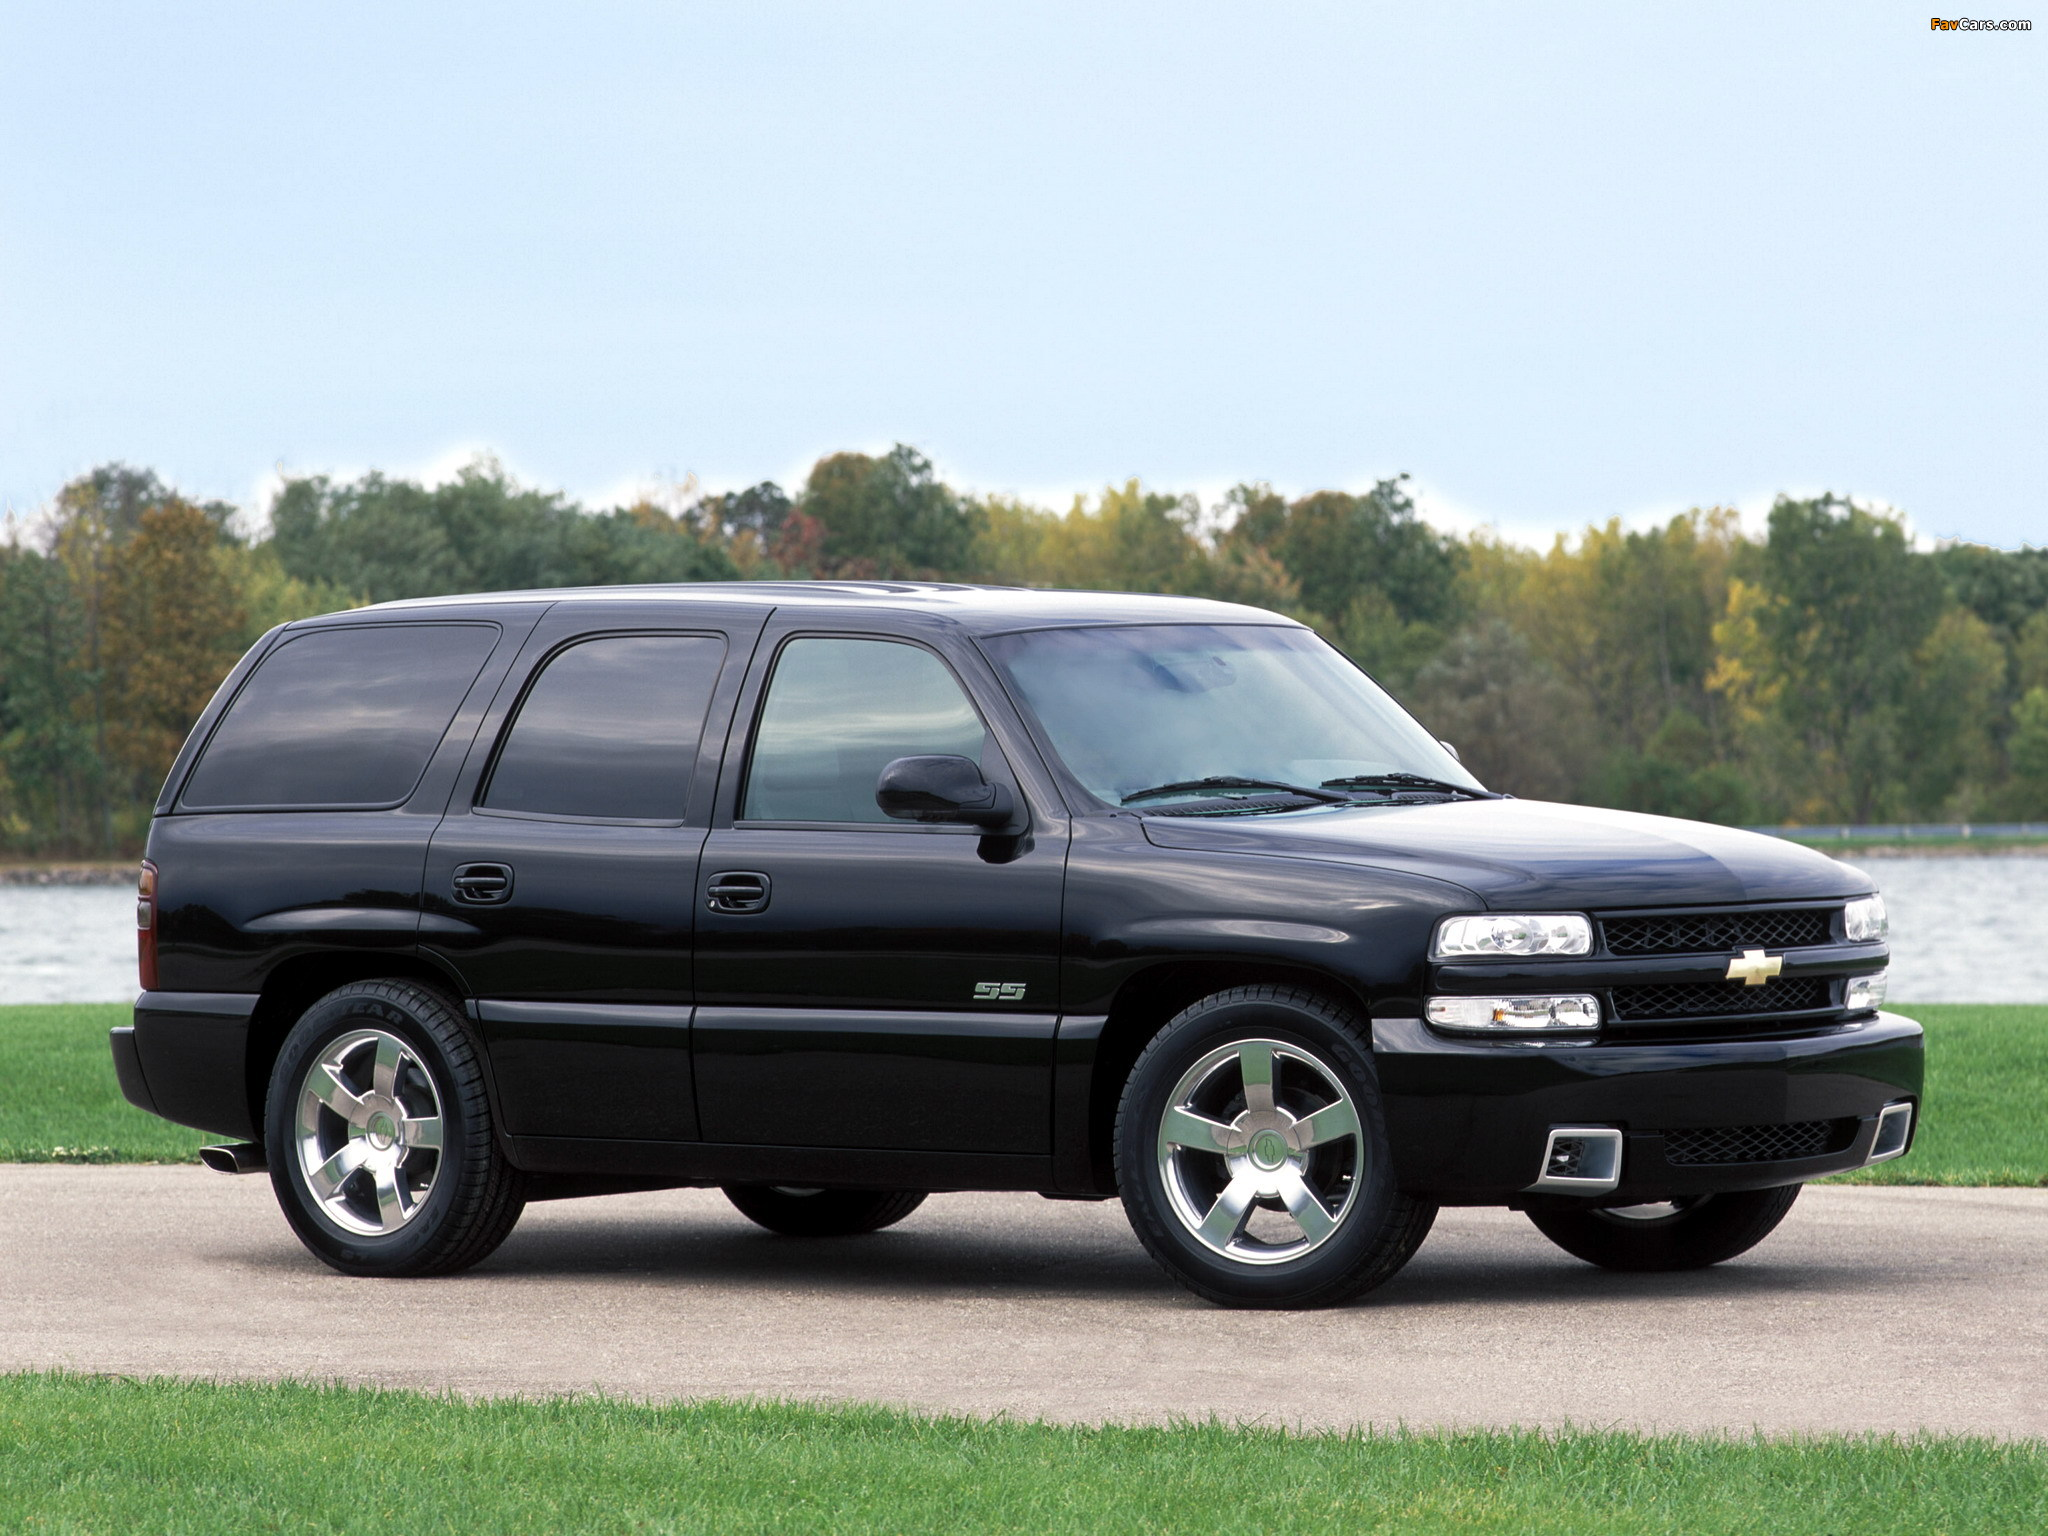 chevrolet tahoe (gmt840) 2006 pictures #1